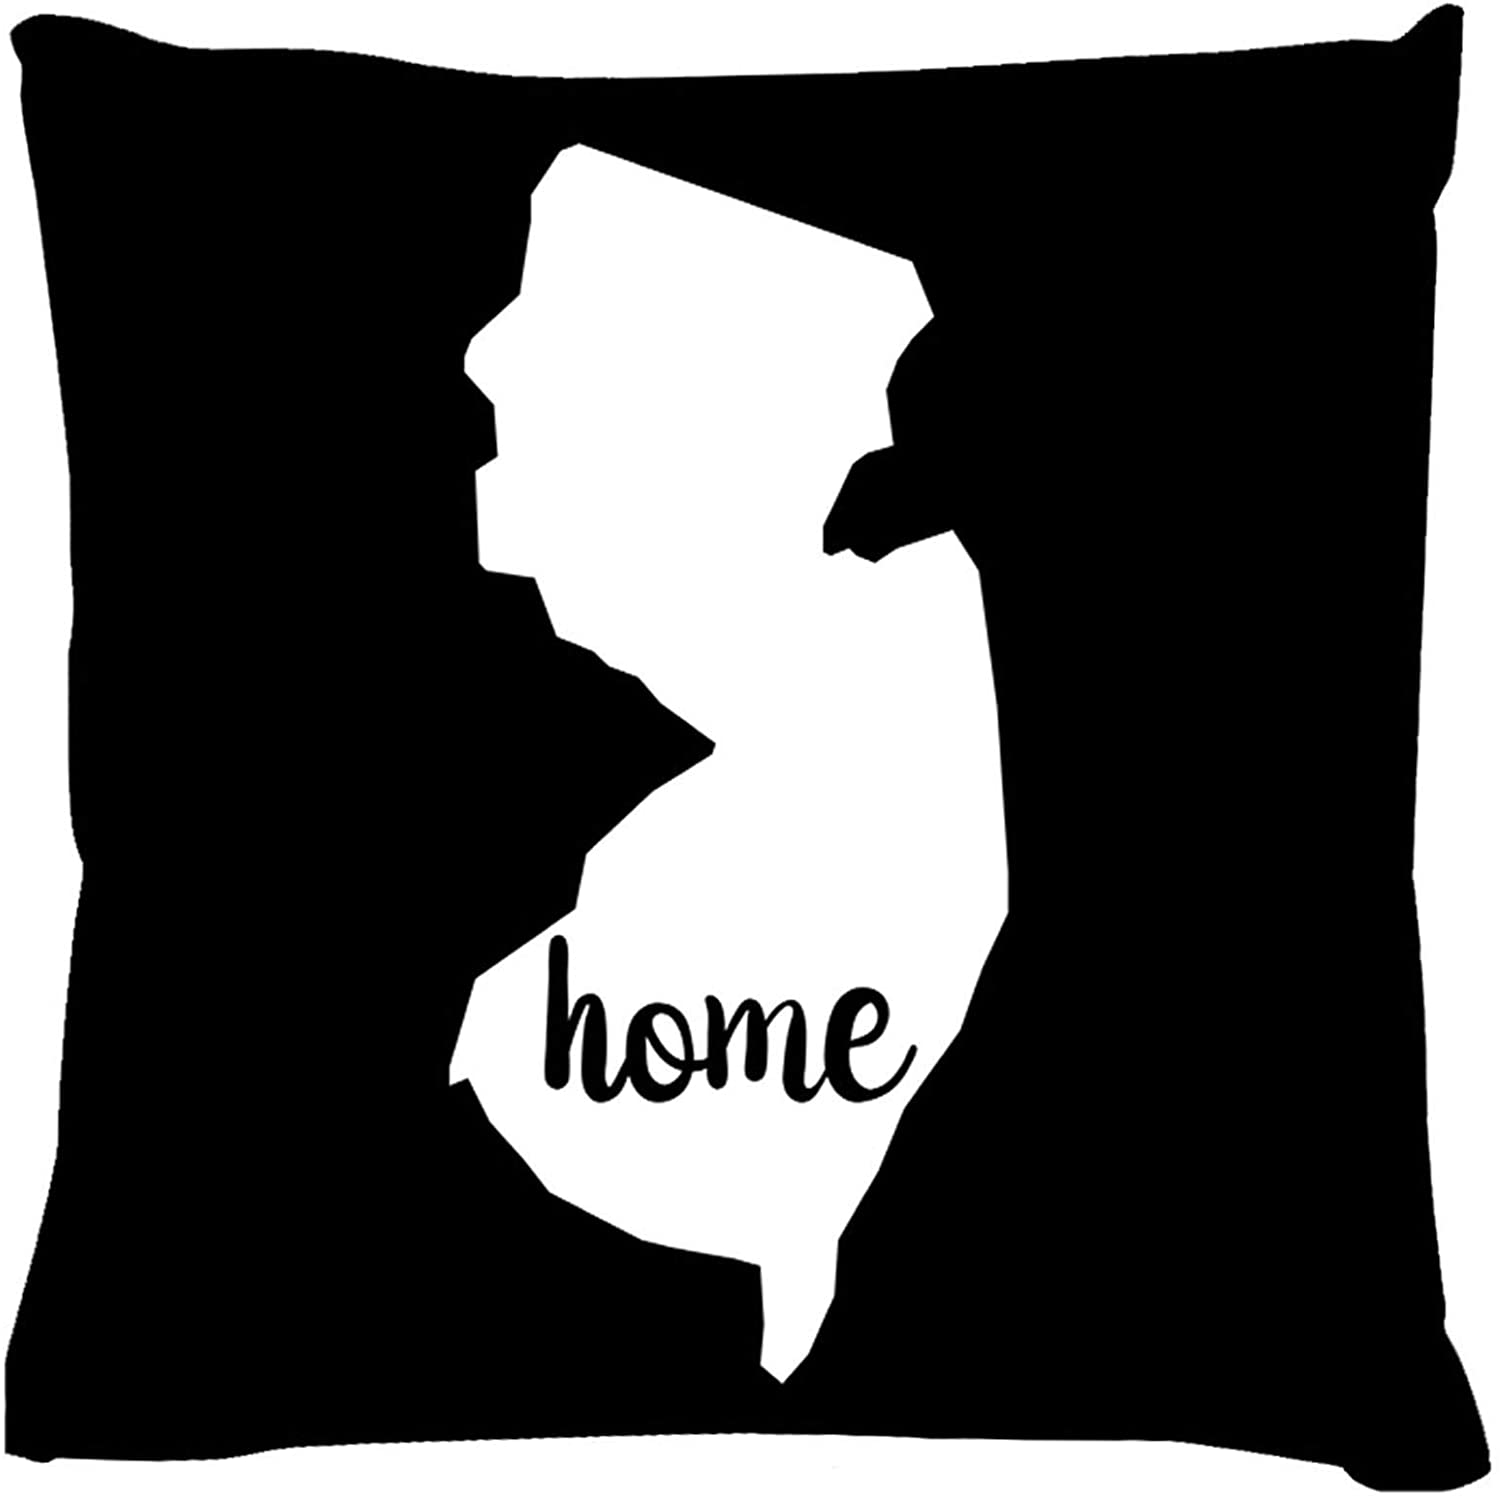 Artswow Throw Pillow Cover Ultra Soft Cushion Case Home Office Decorative Pillowcovers for Bed Sofa 18x18 Inches - New Jersey